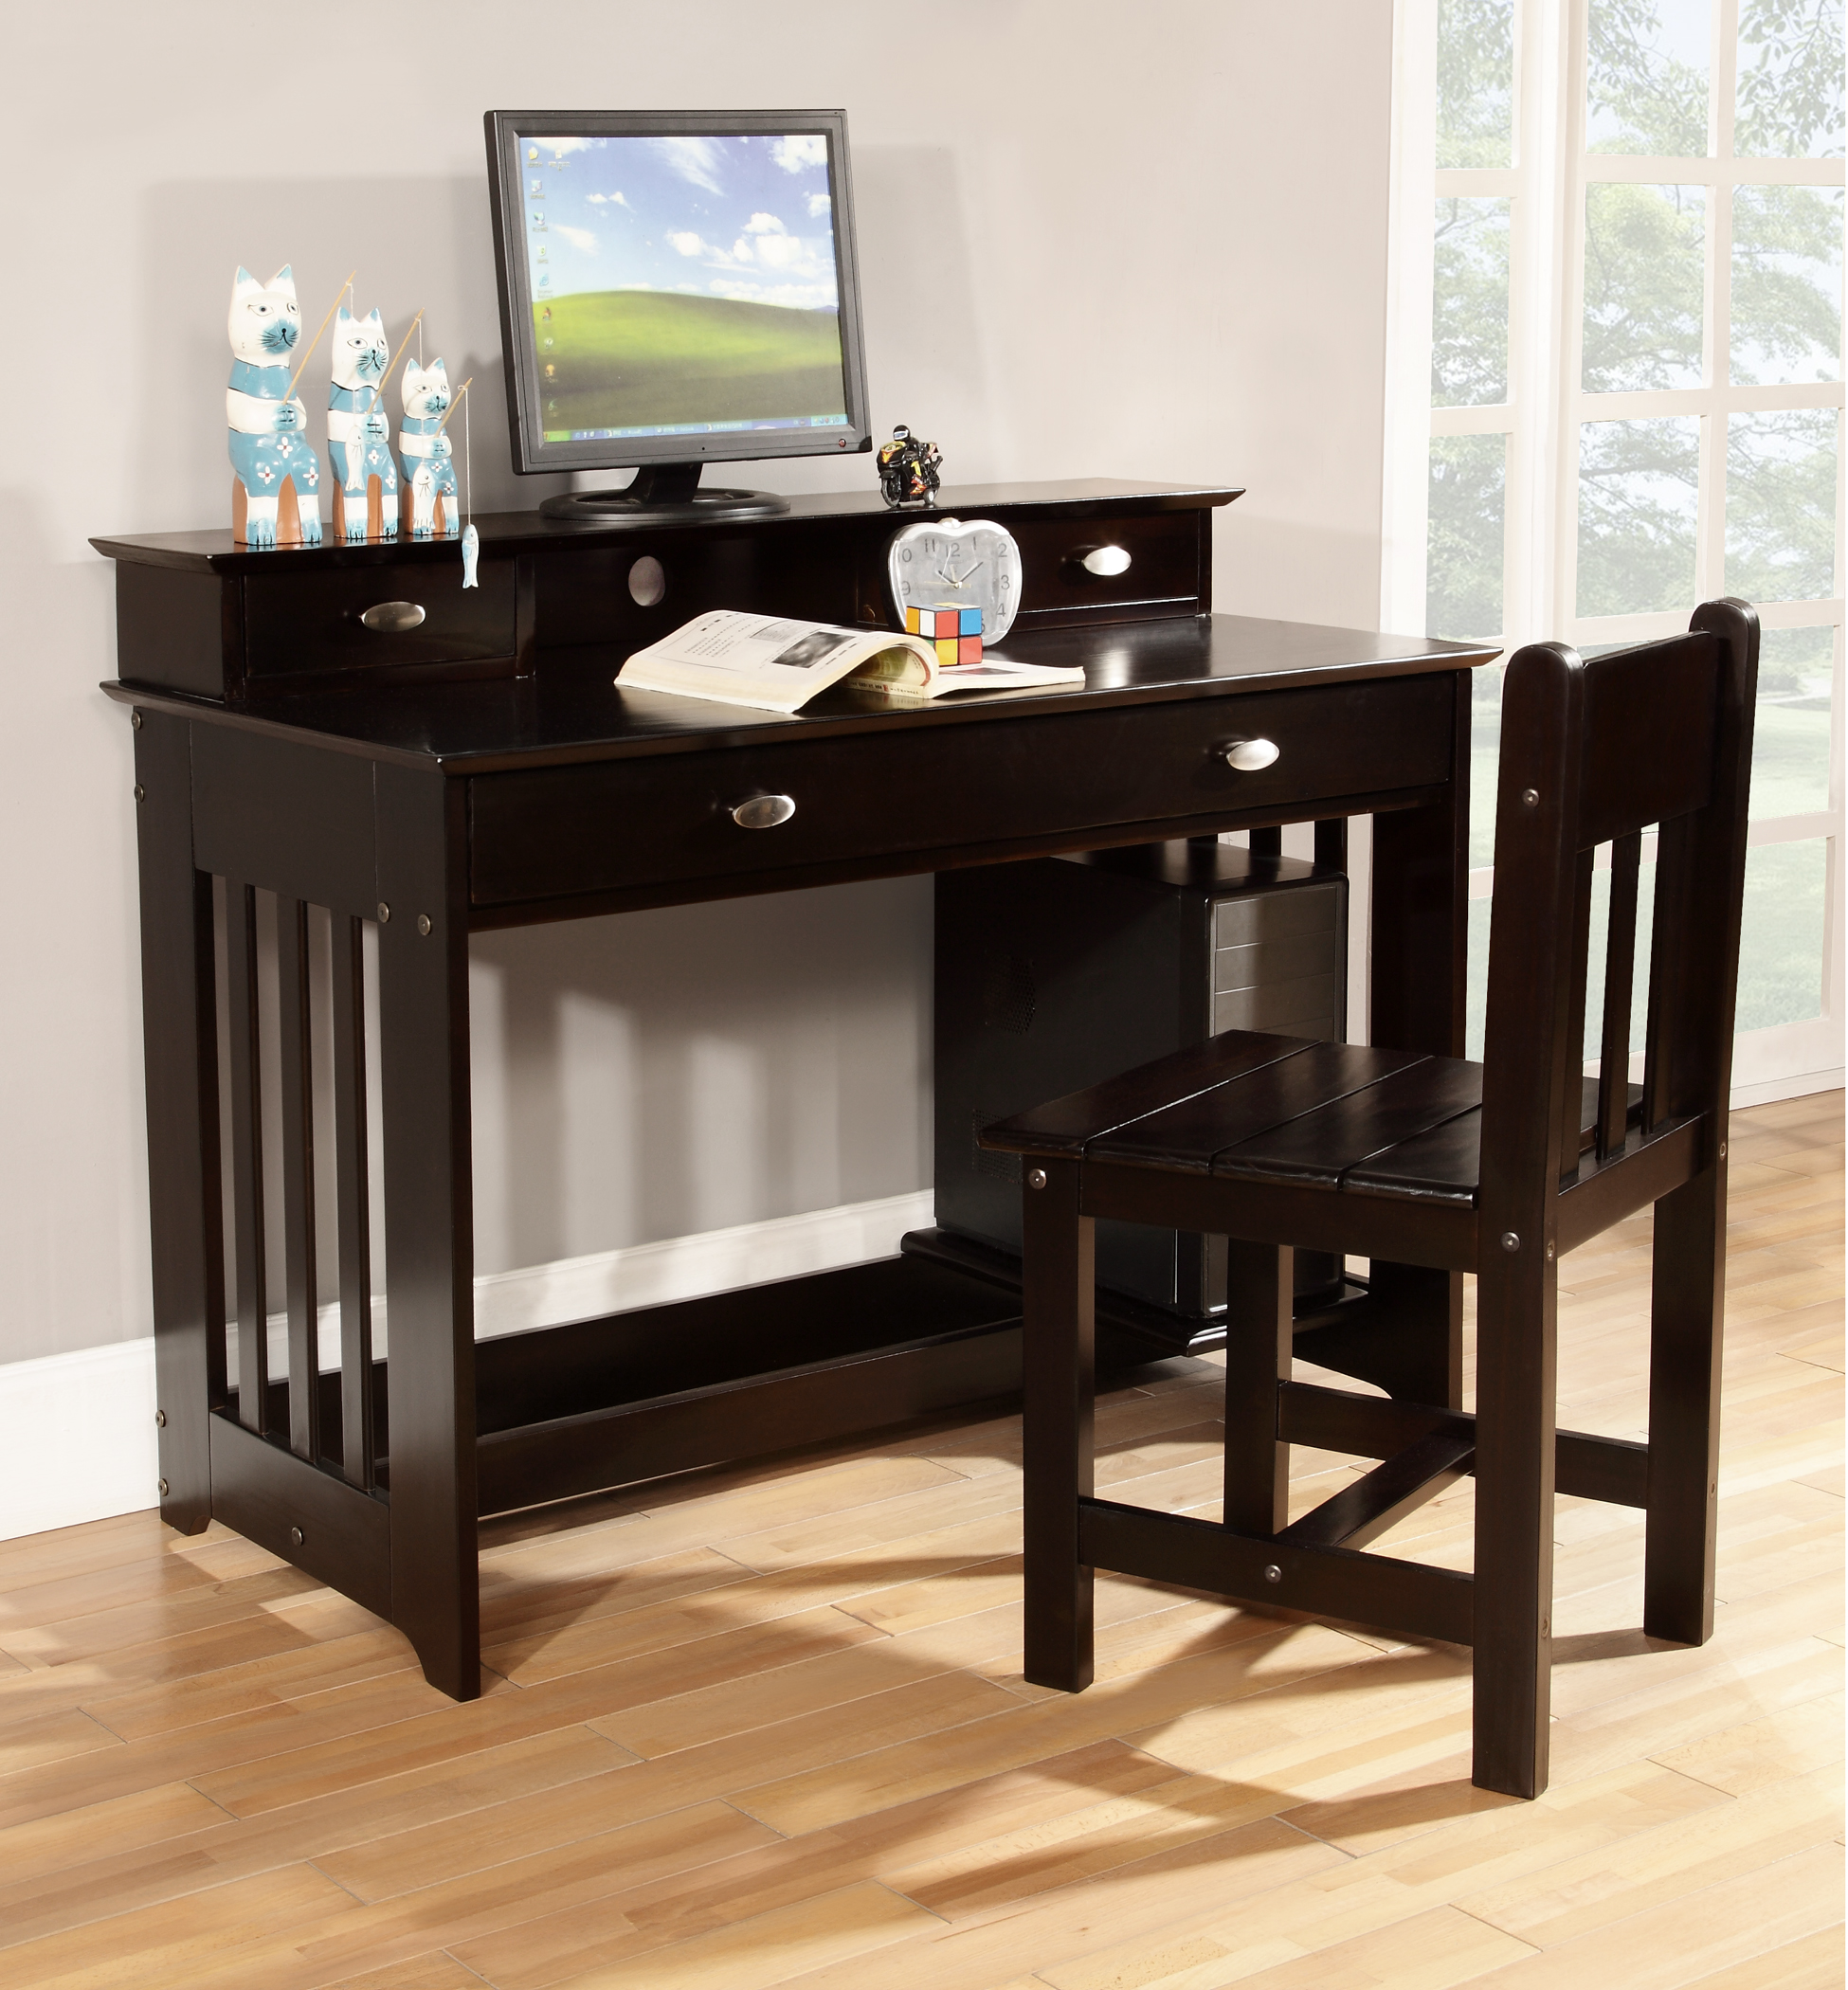 American Furniture Classics Model 2968, Solid Pine Student Desk with Hutch and Chair in Espresso